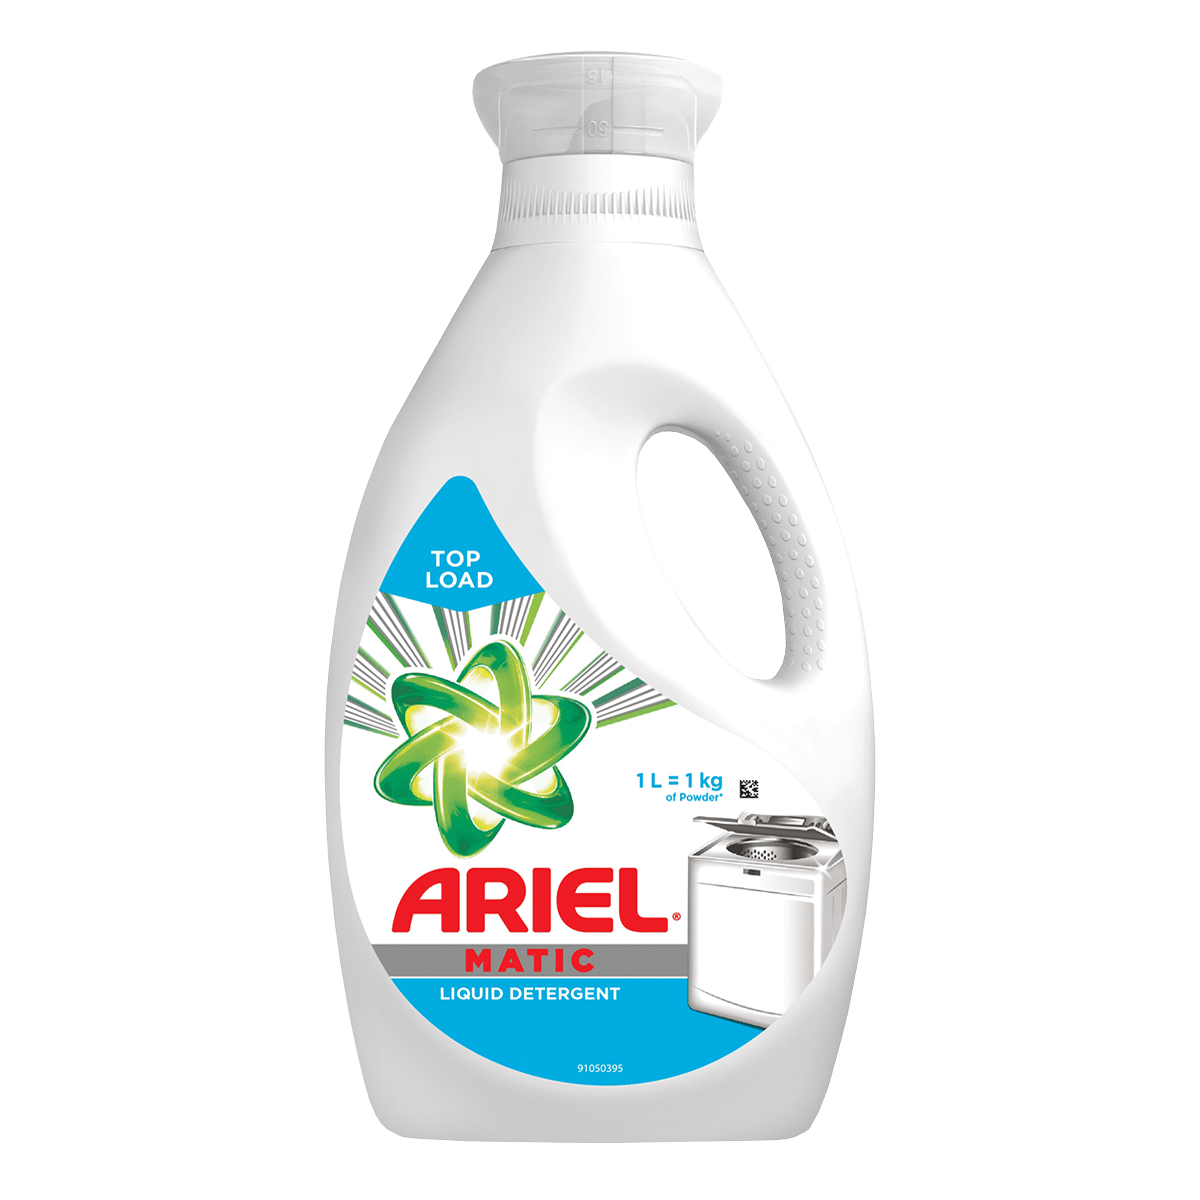 Ariel Matic Liquid Detergent for Top Load Washing Machines